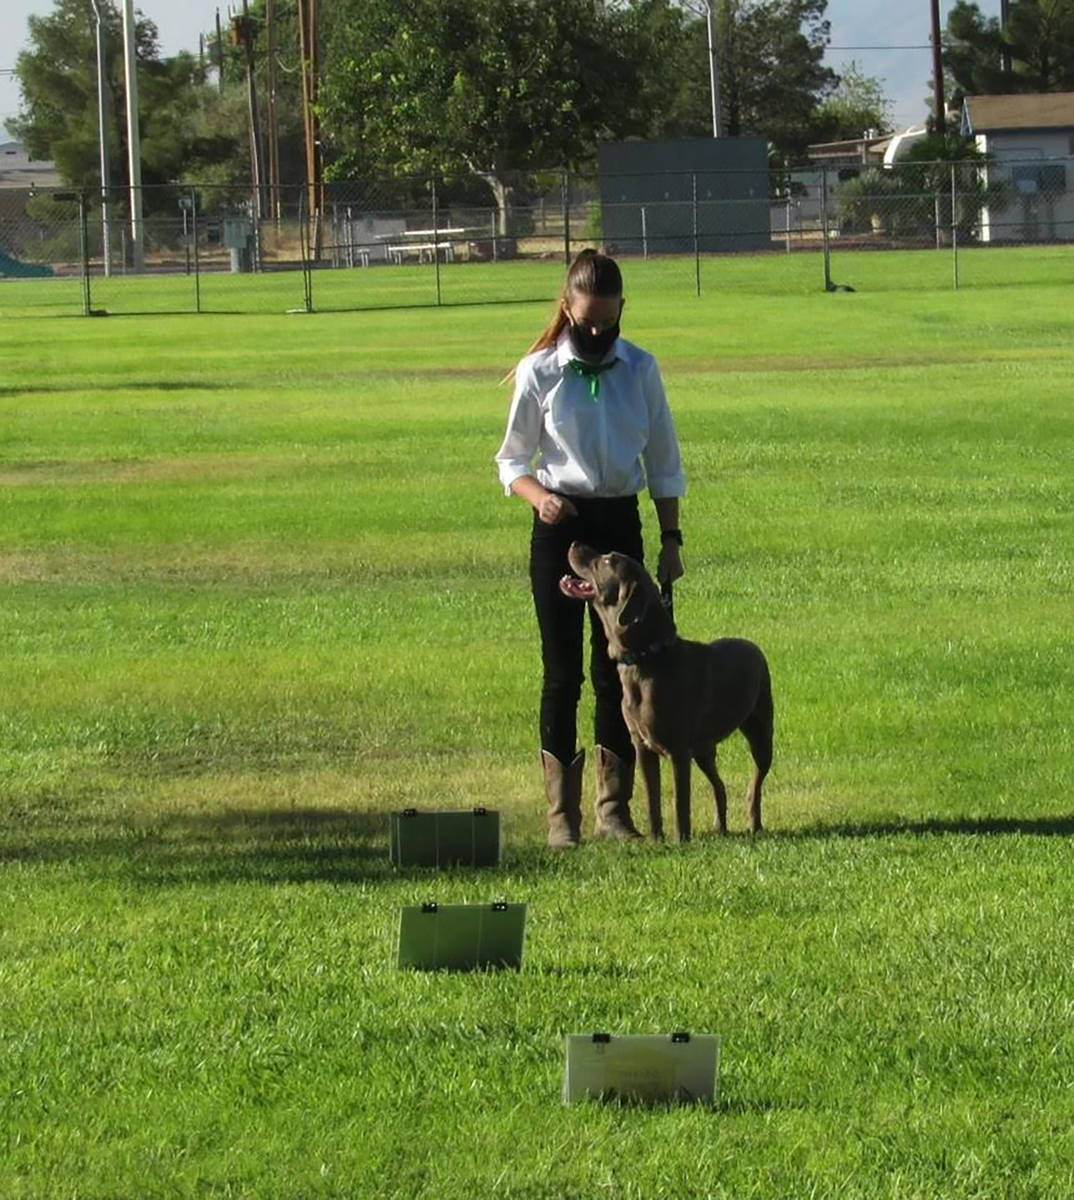 Stormy Ingersoll/Special to the Pahrump Valley Times A member of the 4-H Dog Den club is shown ...